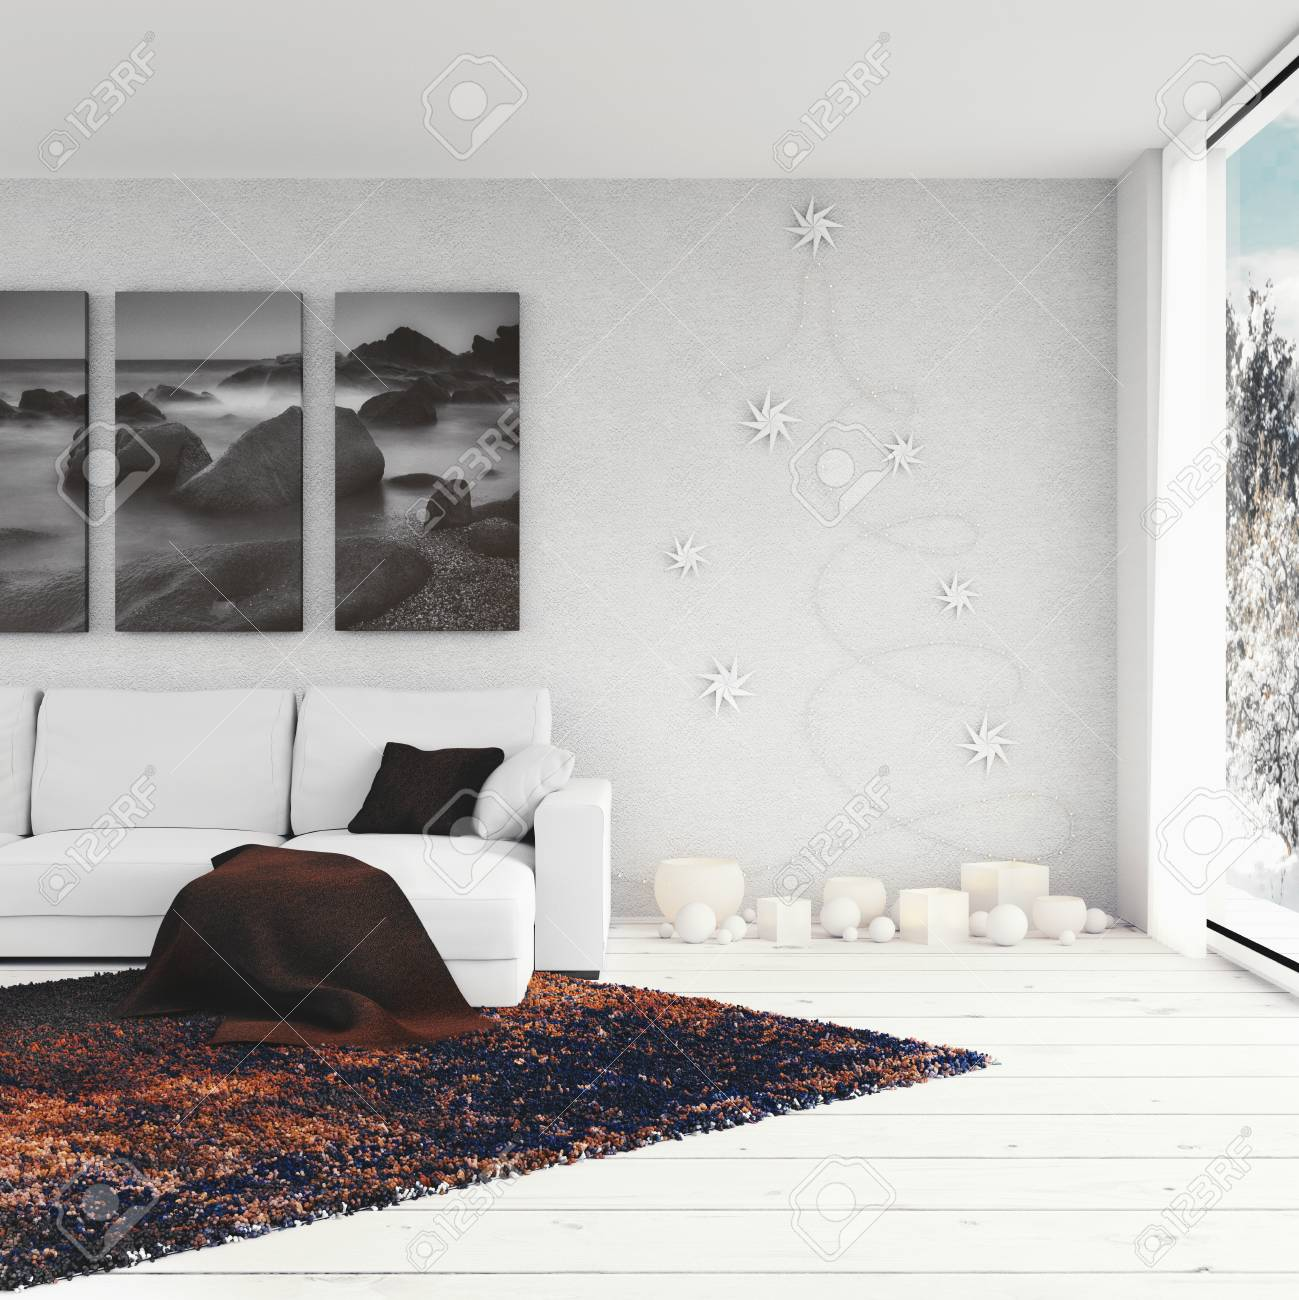 3D render - Living Room With Christmas Decoration - 113193481